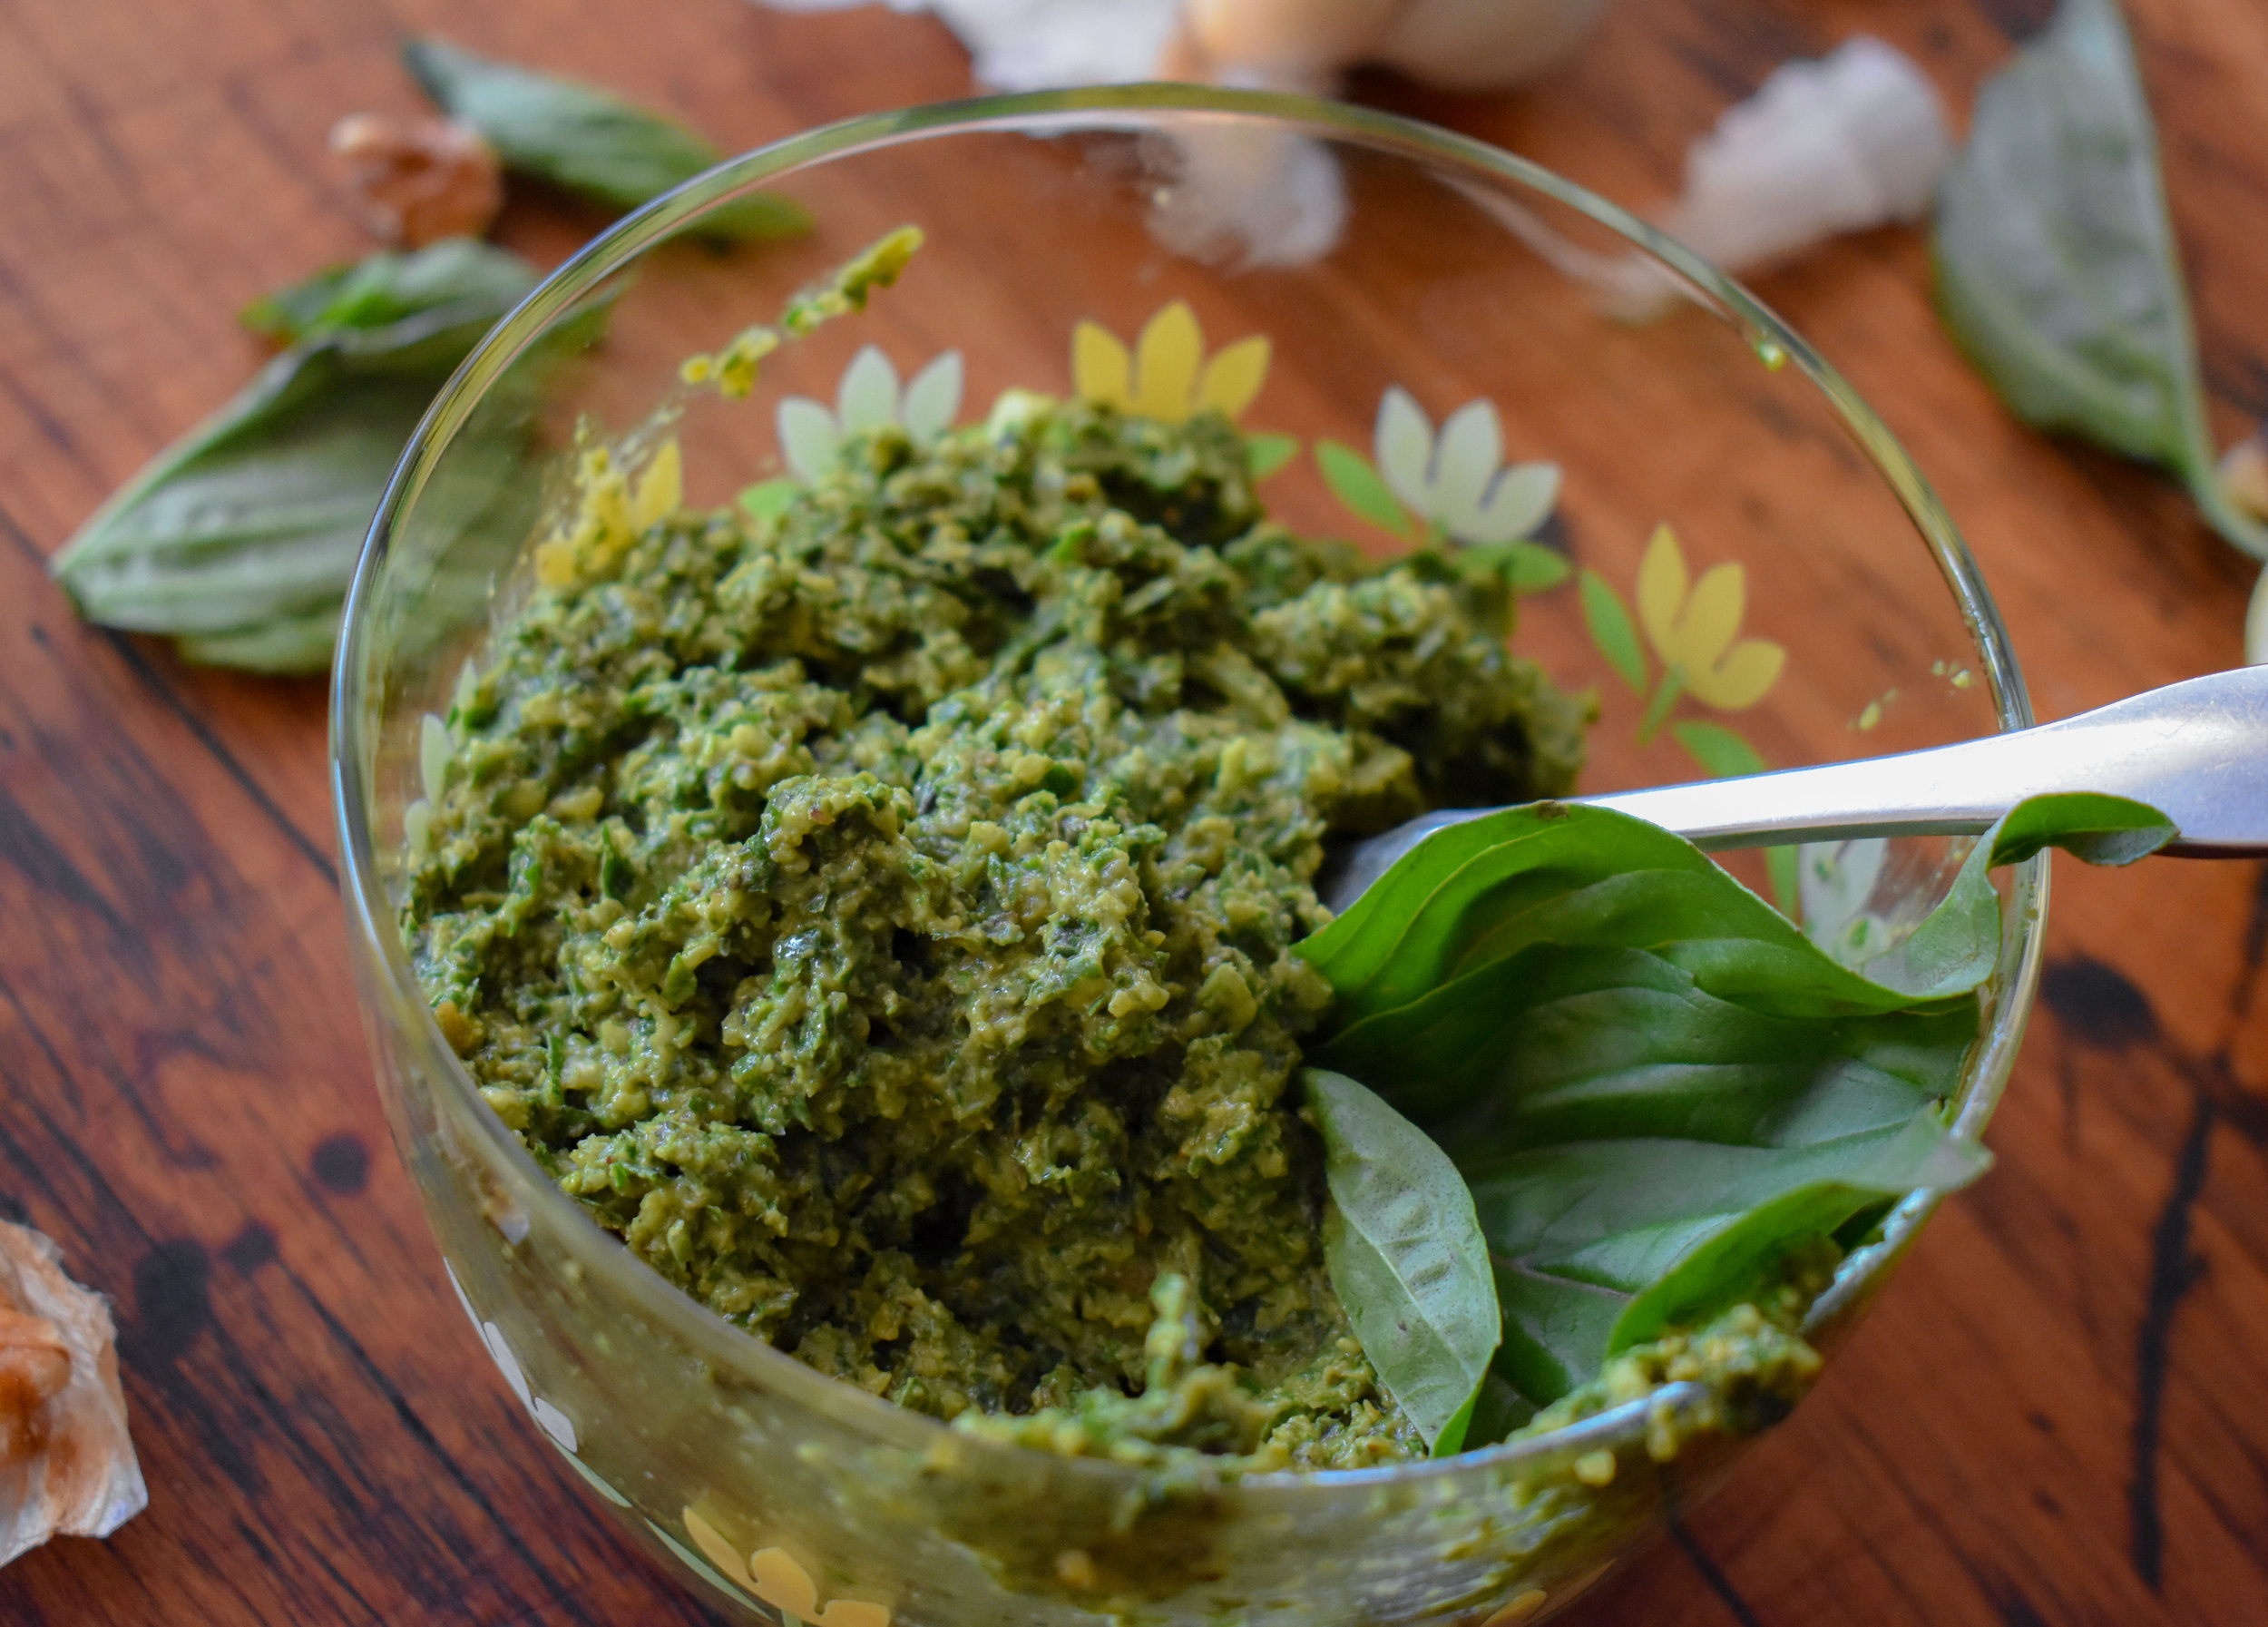 4. Once the mixing is done, the pesto is ready. Transfer to a bowl and use immediately or store for up to 48 hours. Great in pasta / dips / salad dressings / breakfast scrambles and so much more!